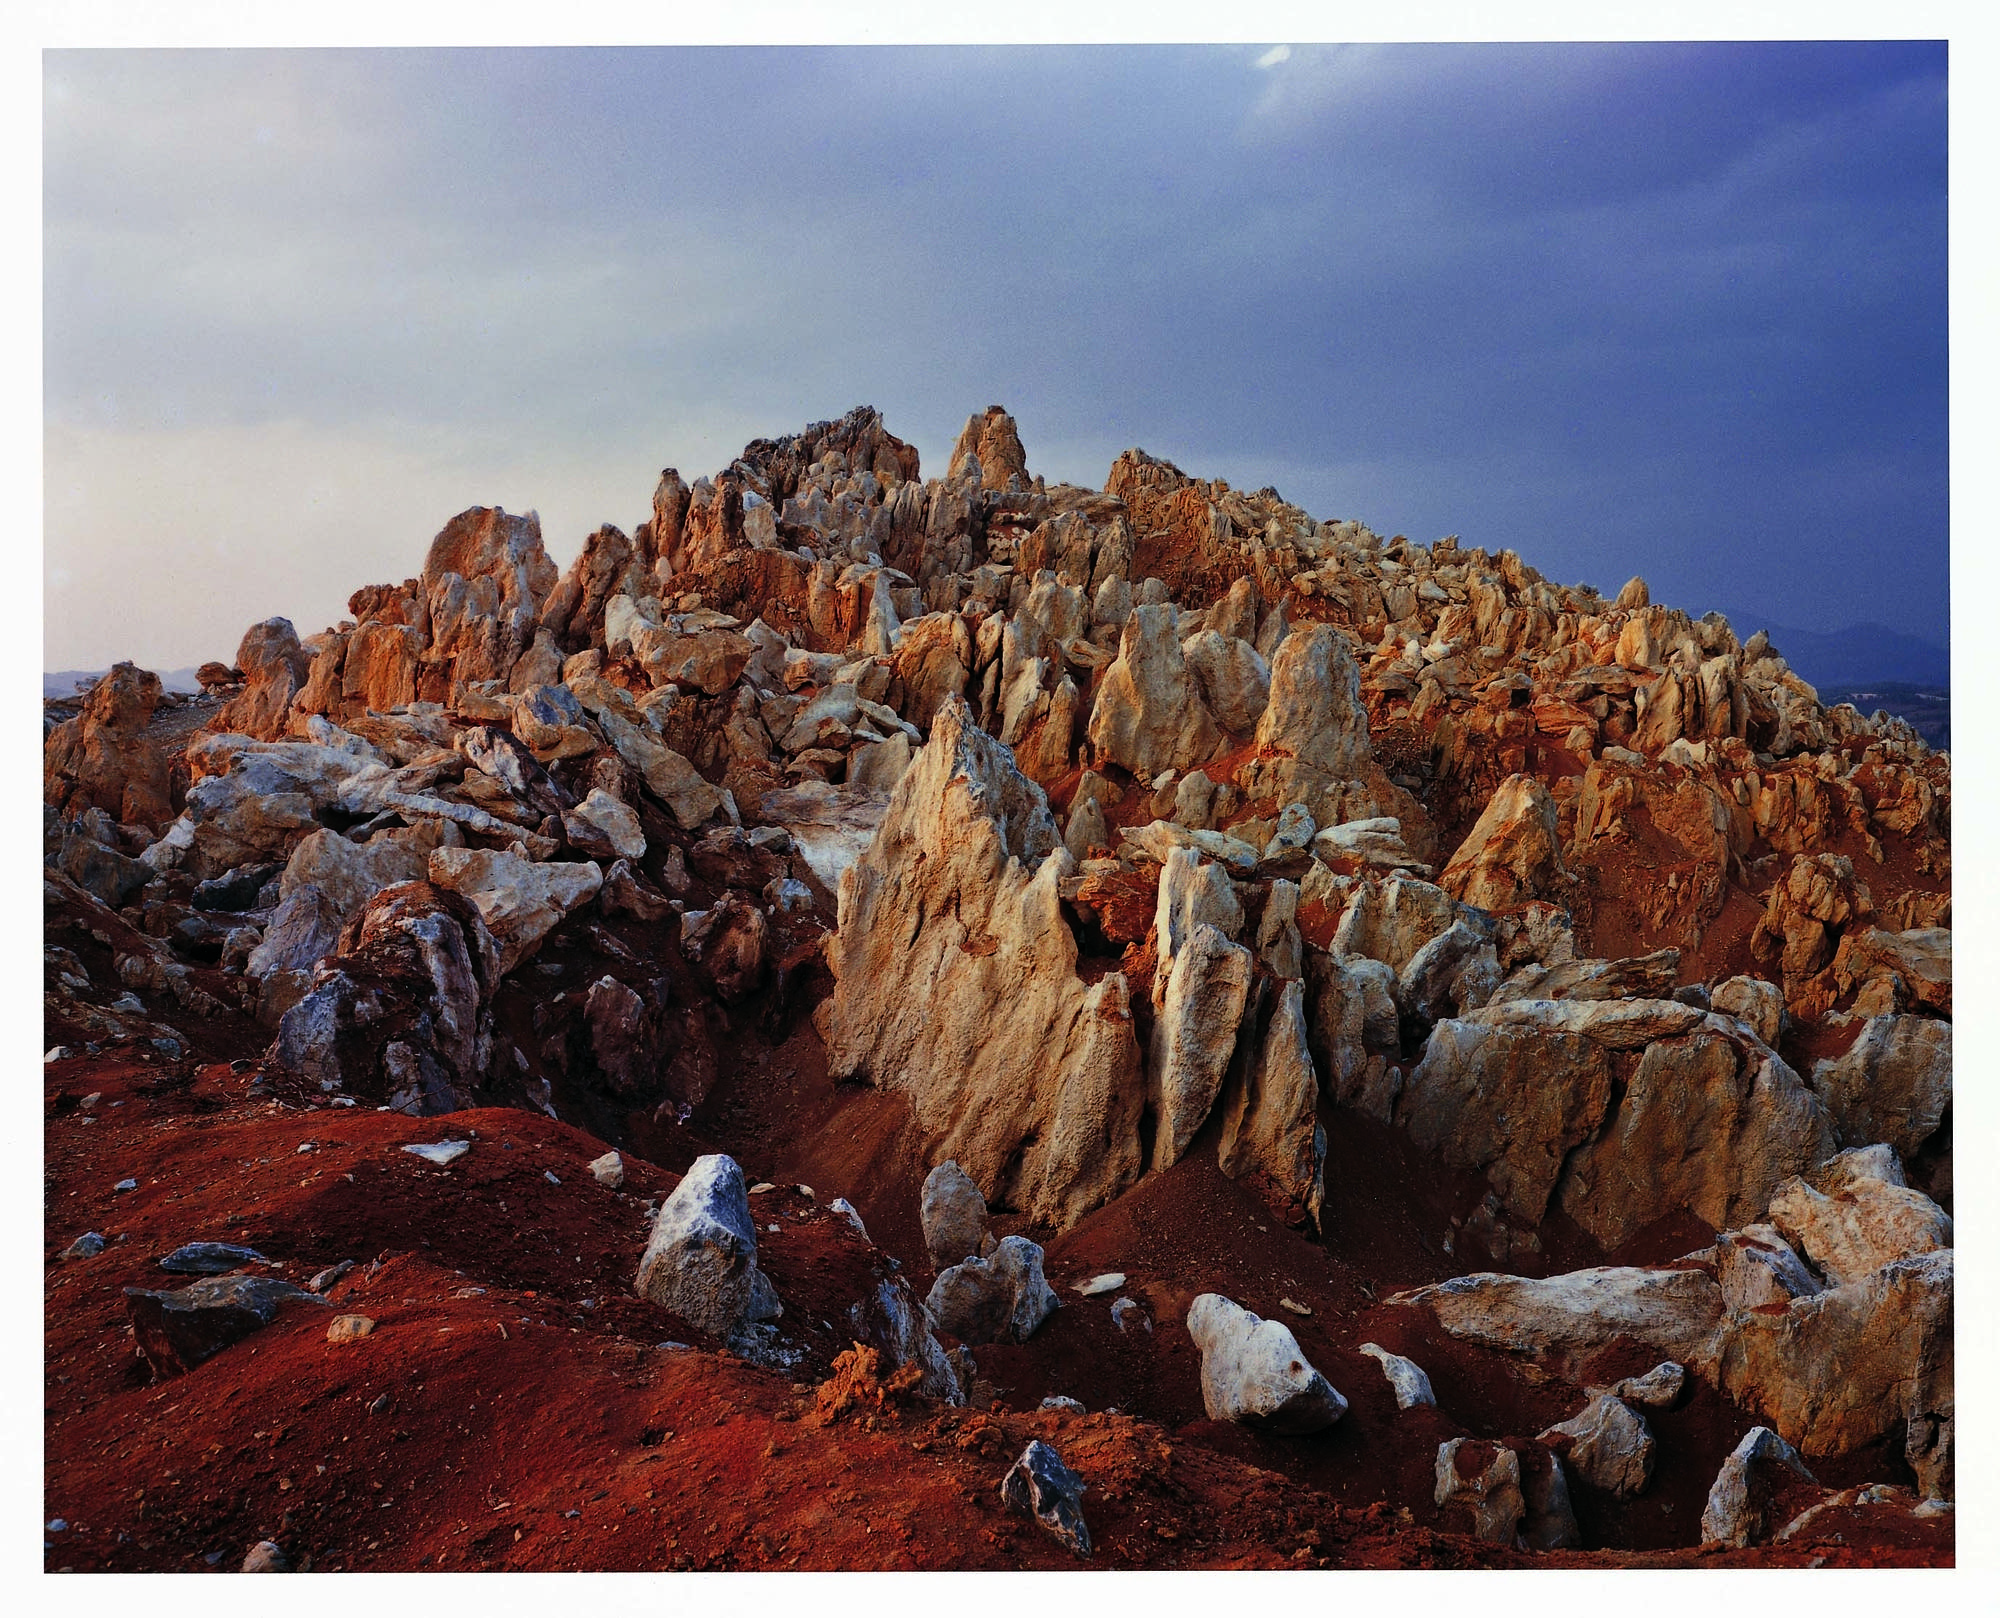 Naoya Hatakeyama began his photography working in limestone quarries.